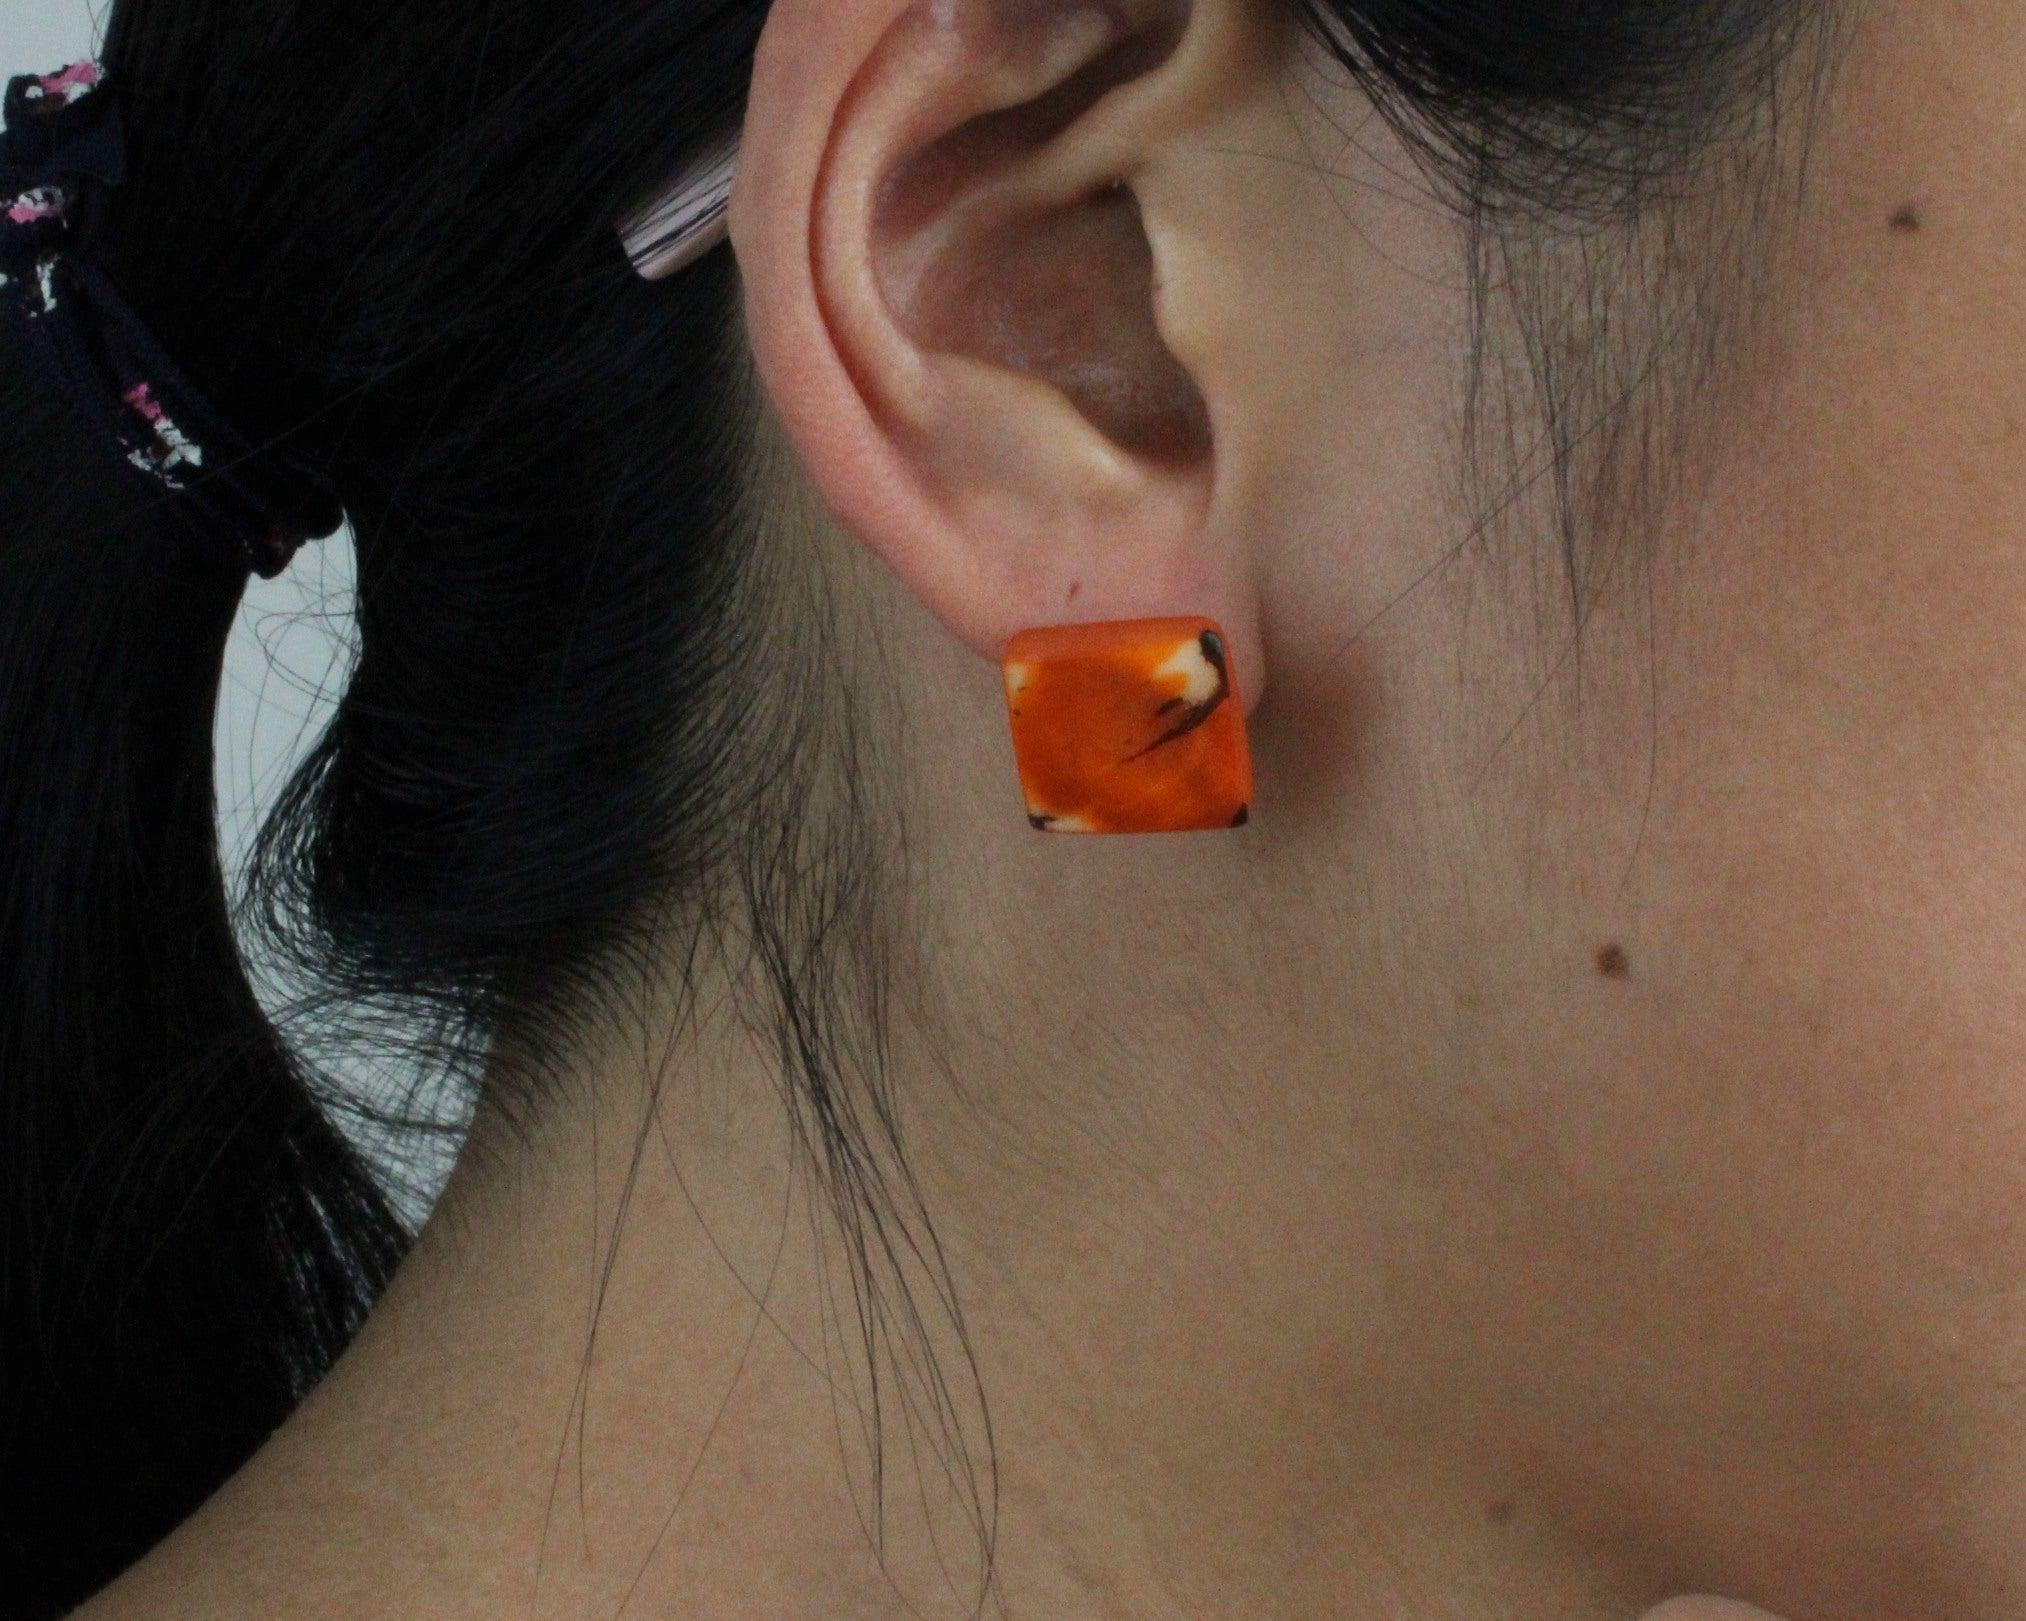 Handmade earring, sustainable, tagua, stud, push back, orange, ear